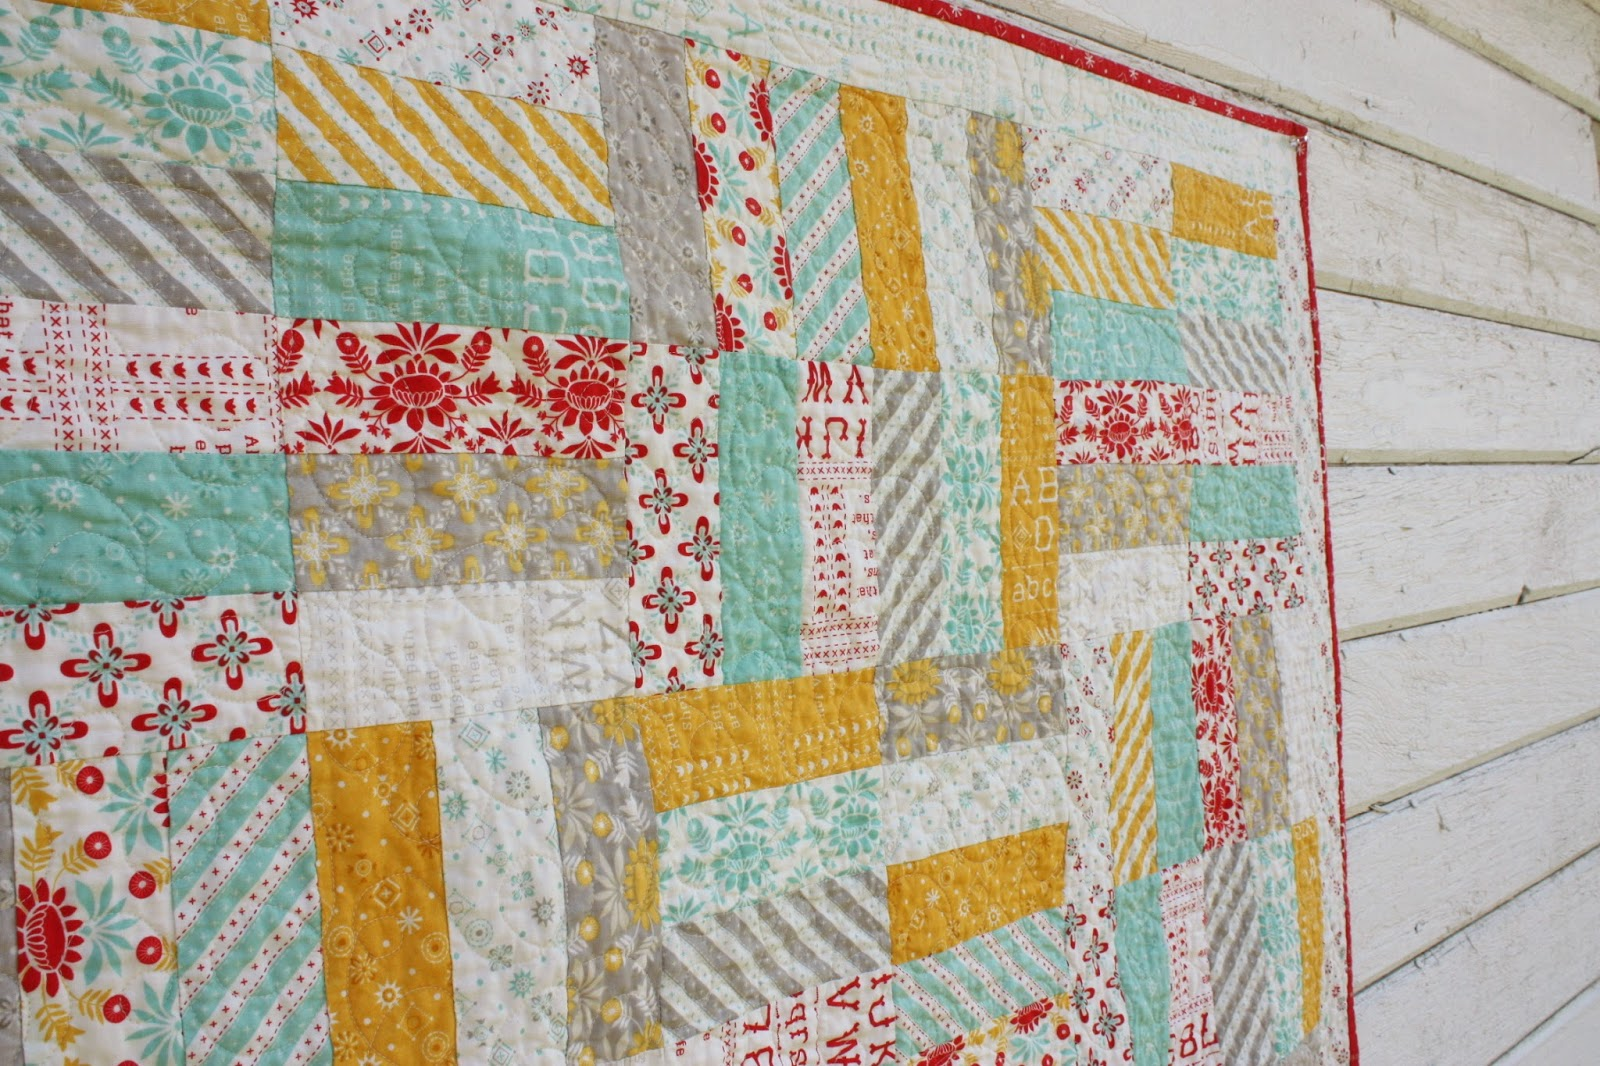 Easy Baby Jelly Roll Quit Pattern - Diary of a Quilter - a quilt blog : quilt jelly roll - Adamdwight.com